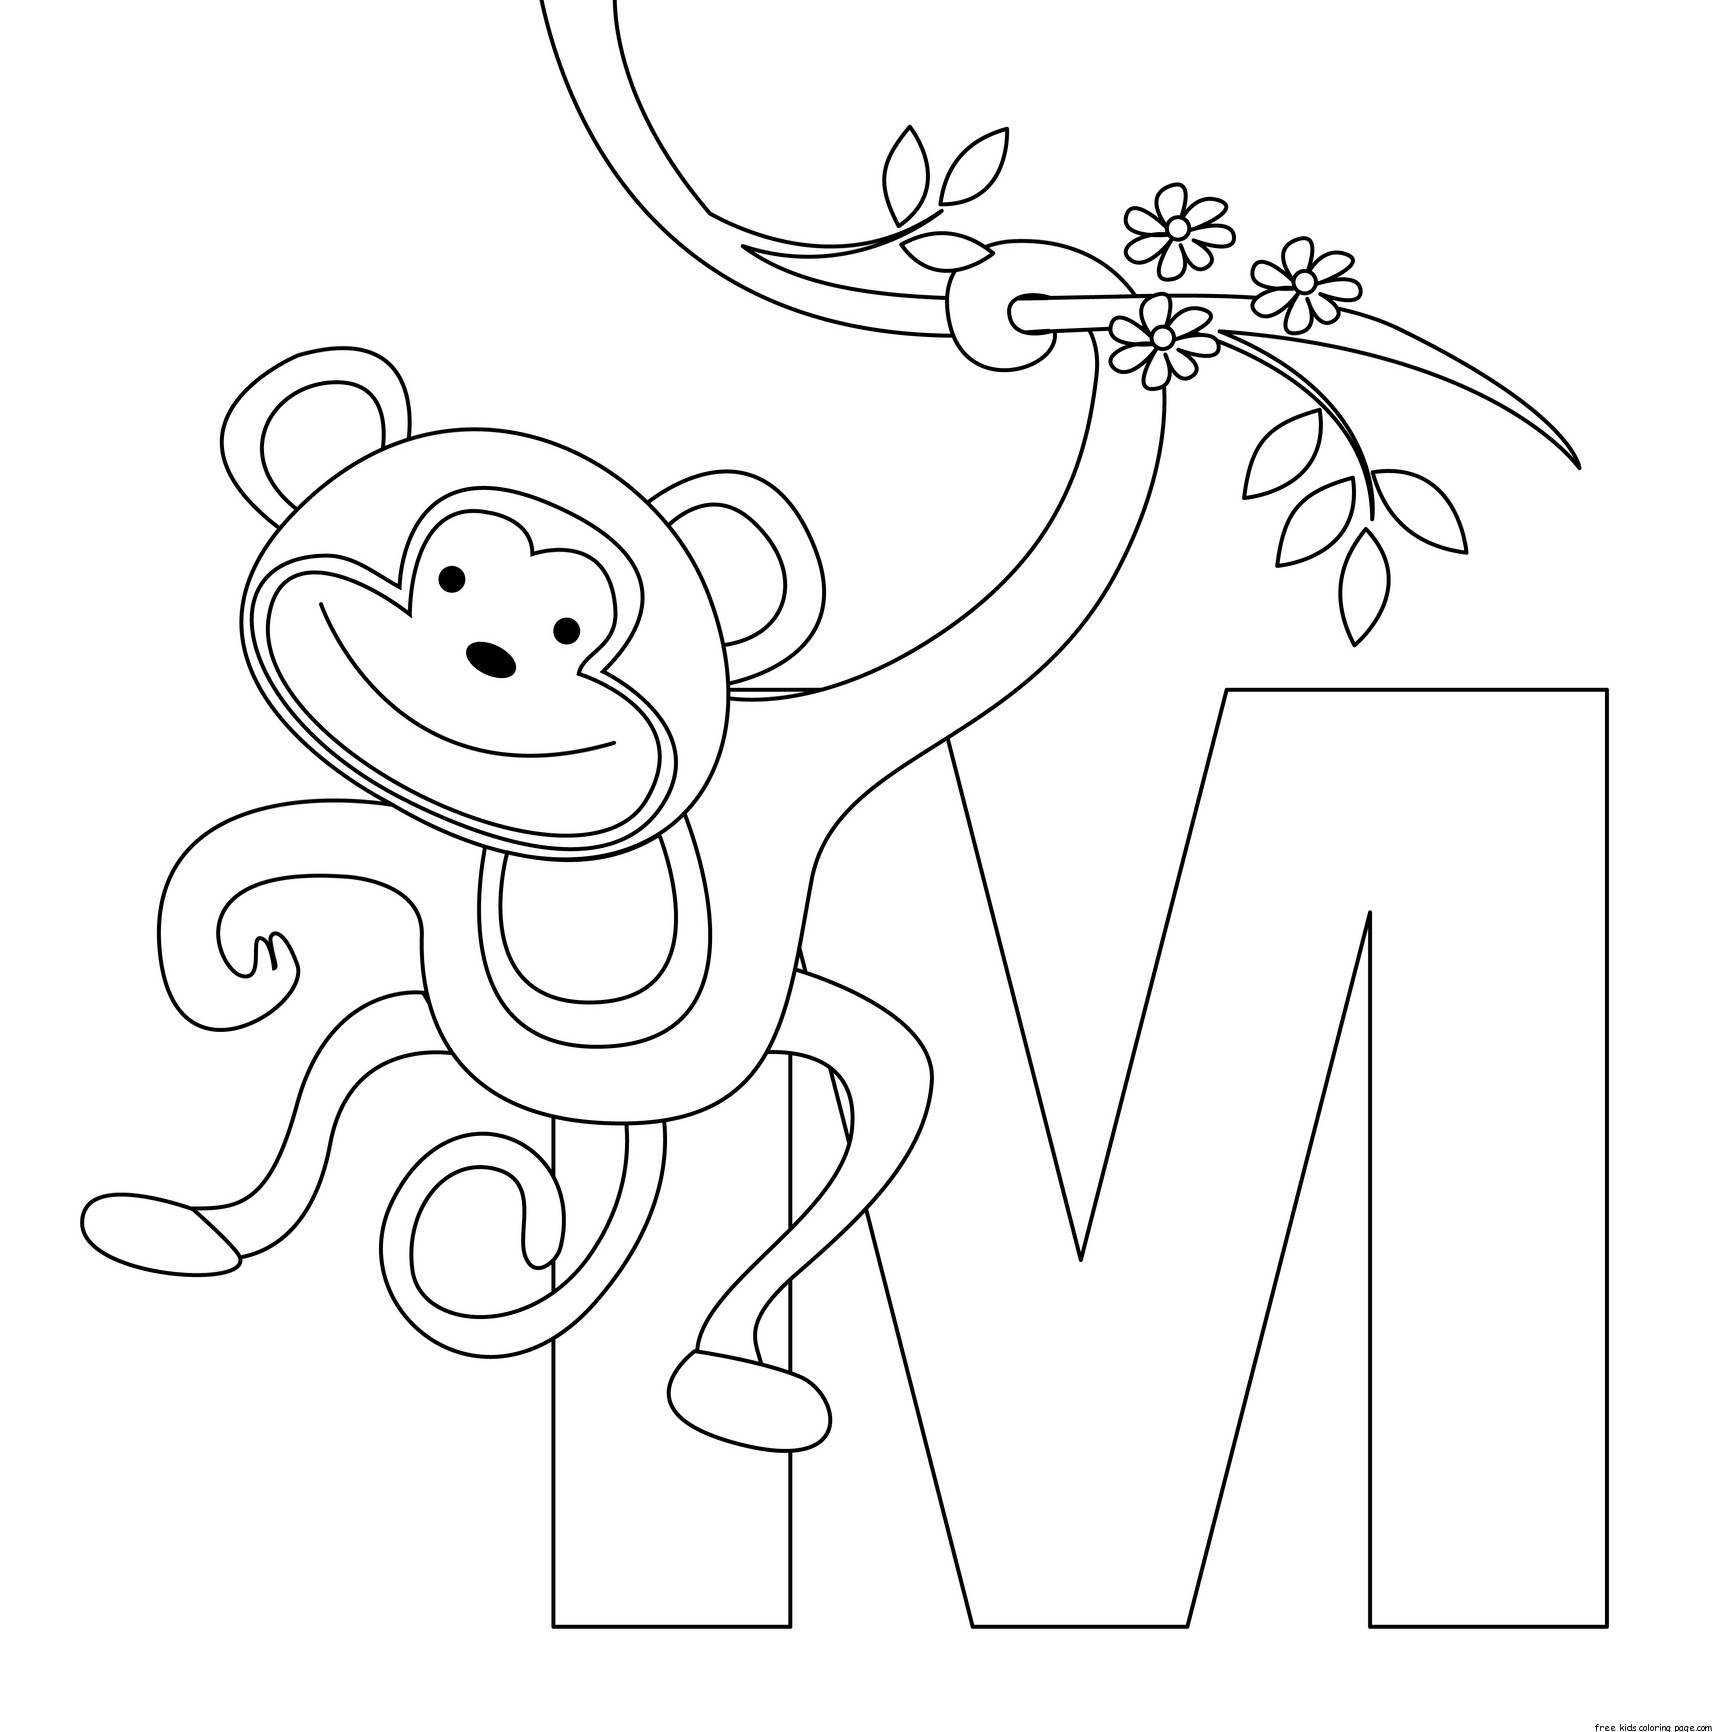 m for monkey coloring pages - photo #14